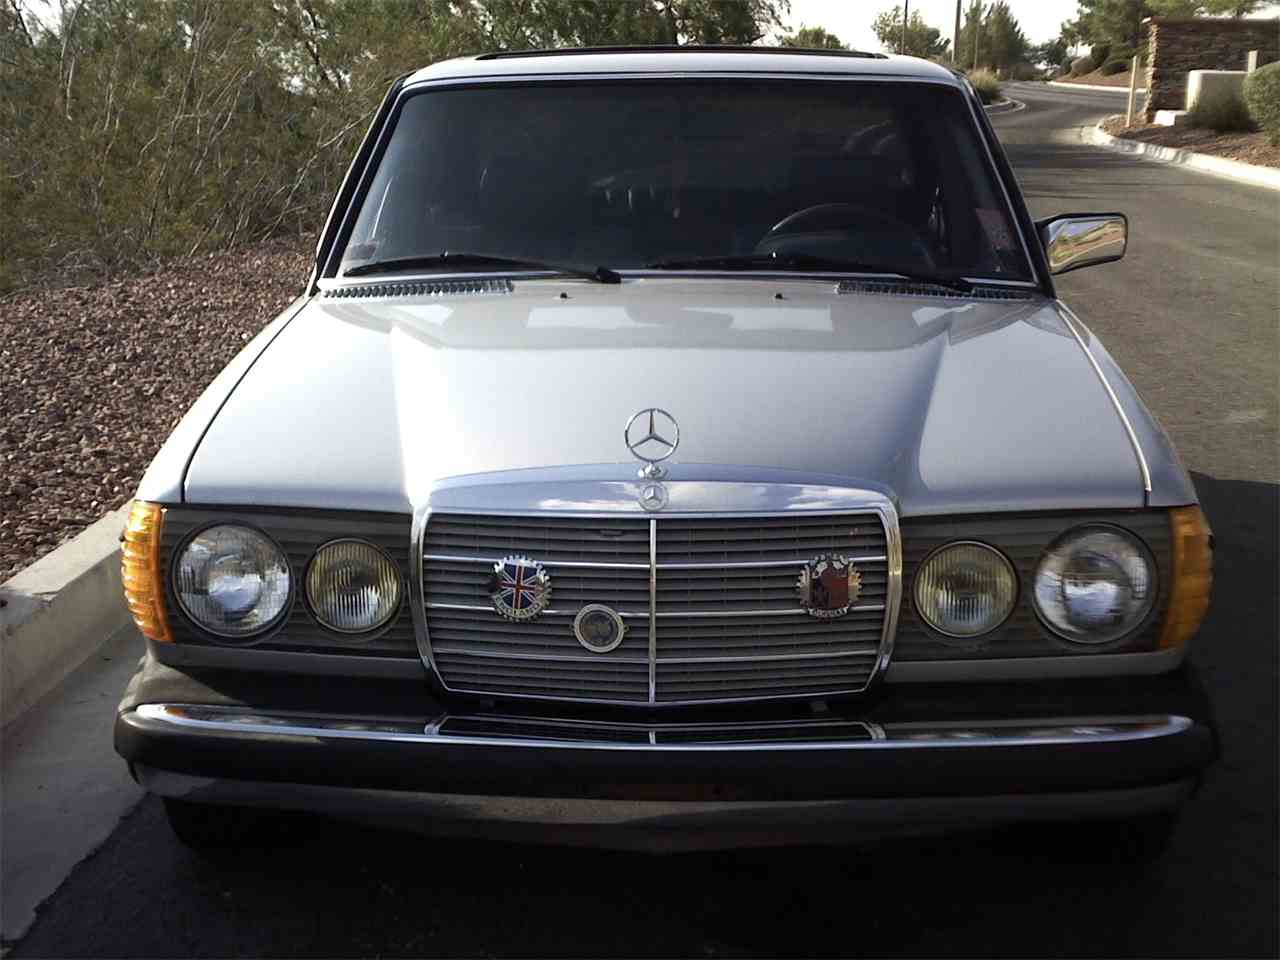 1980 mercedes benz 300d for sale cc 896518 for 1980 mercedes benz for sale